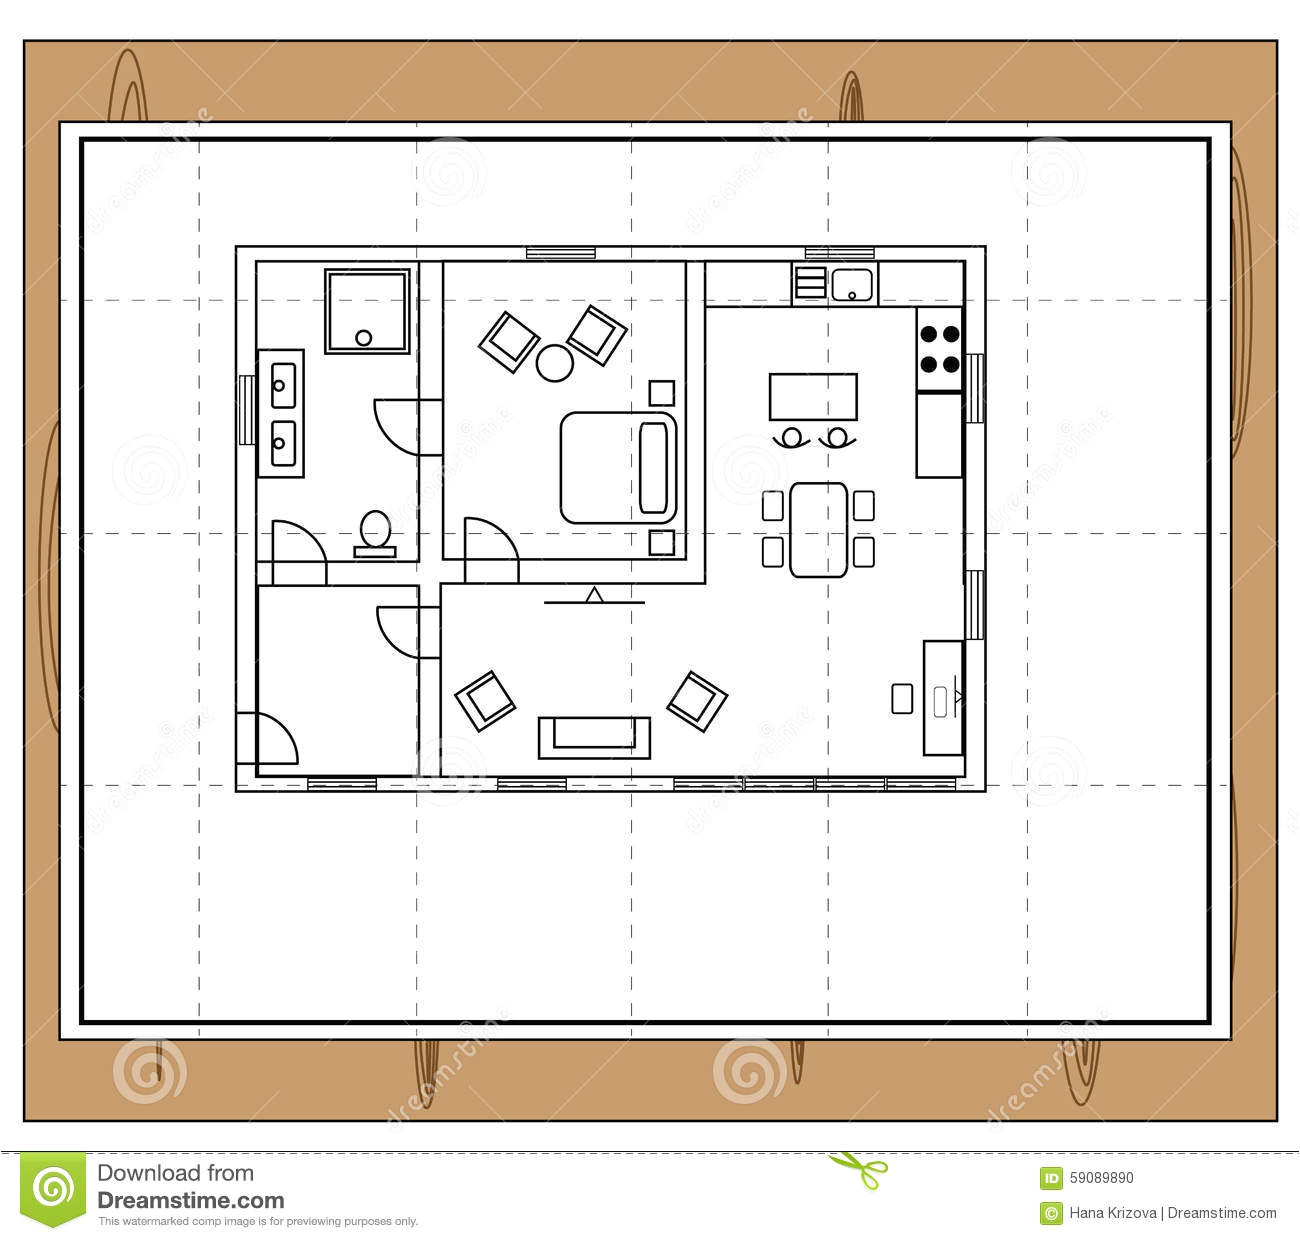 stock illustration house plan drawing individual rooms such as bathroom toilet bathroom bedroom kitchen living room image59089890